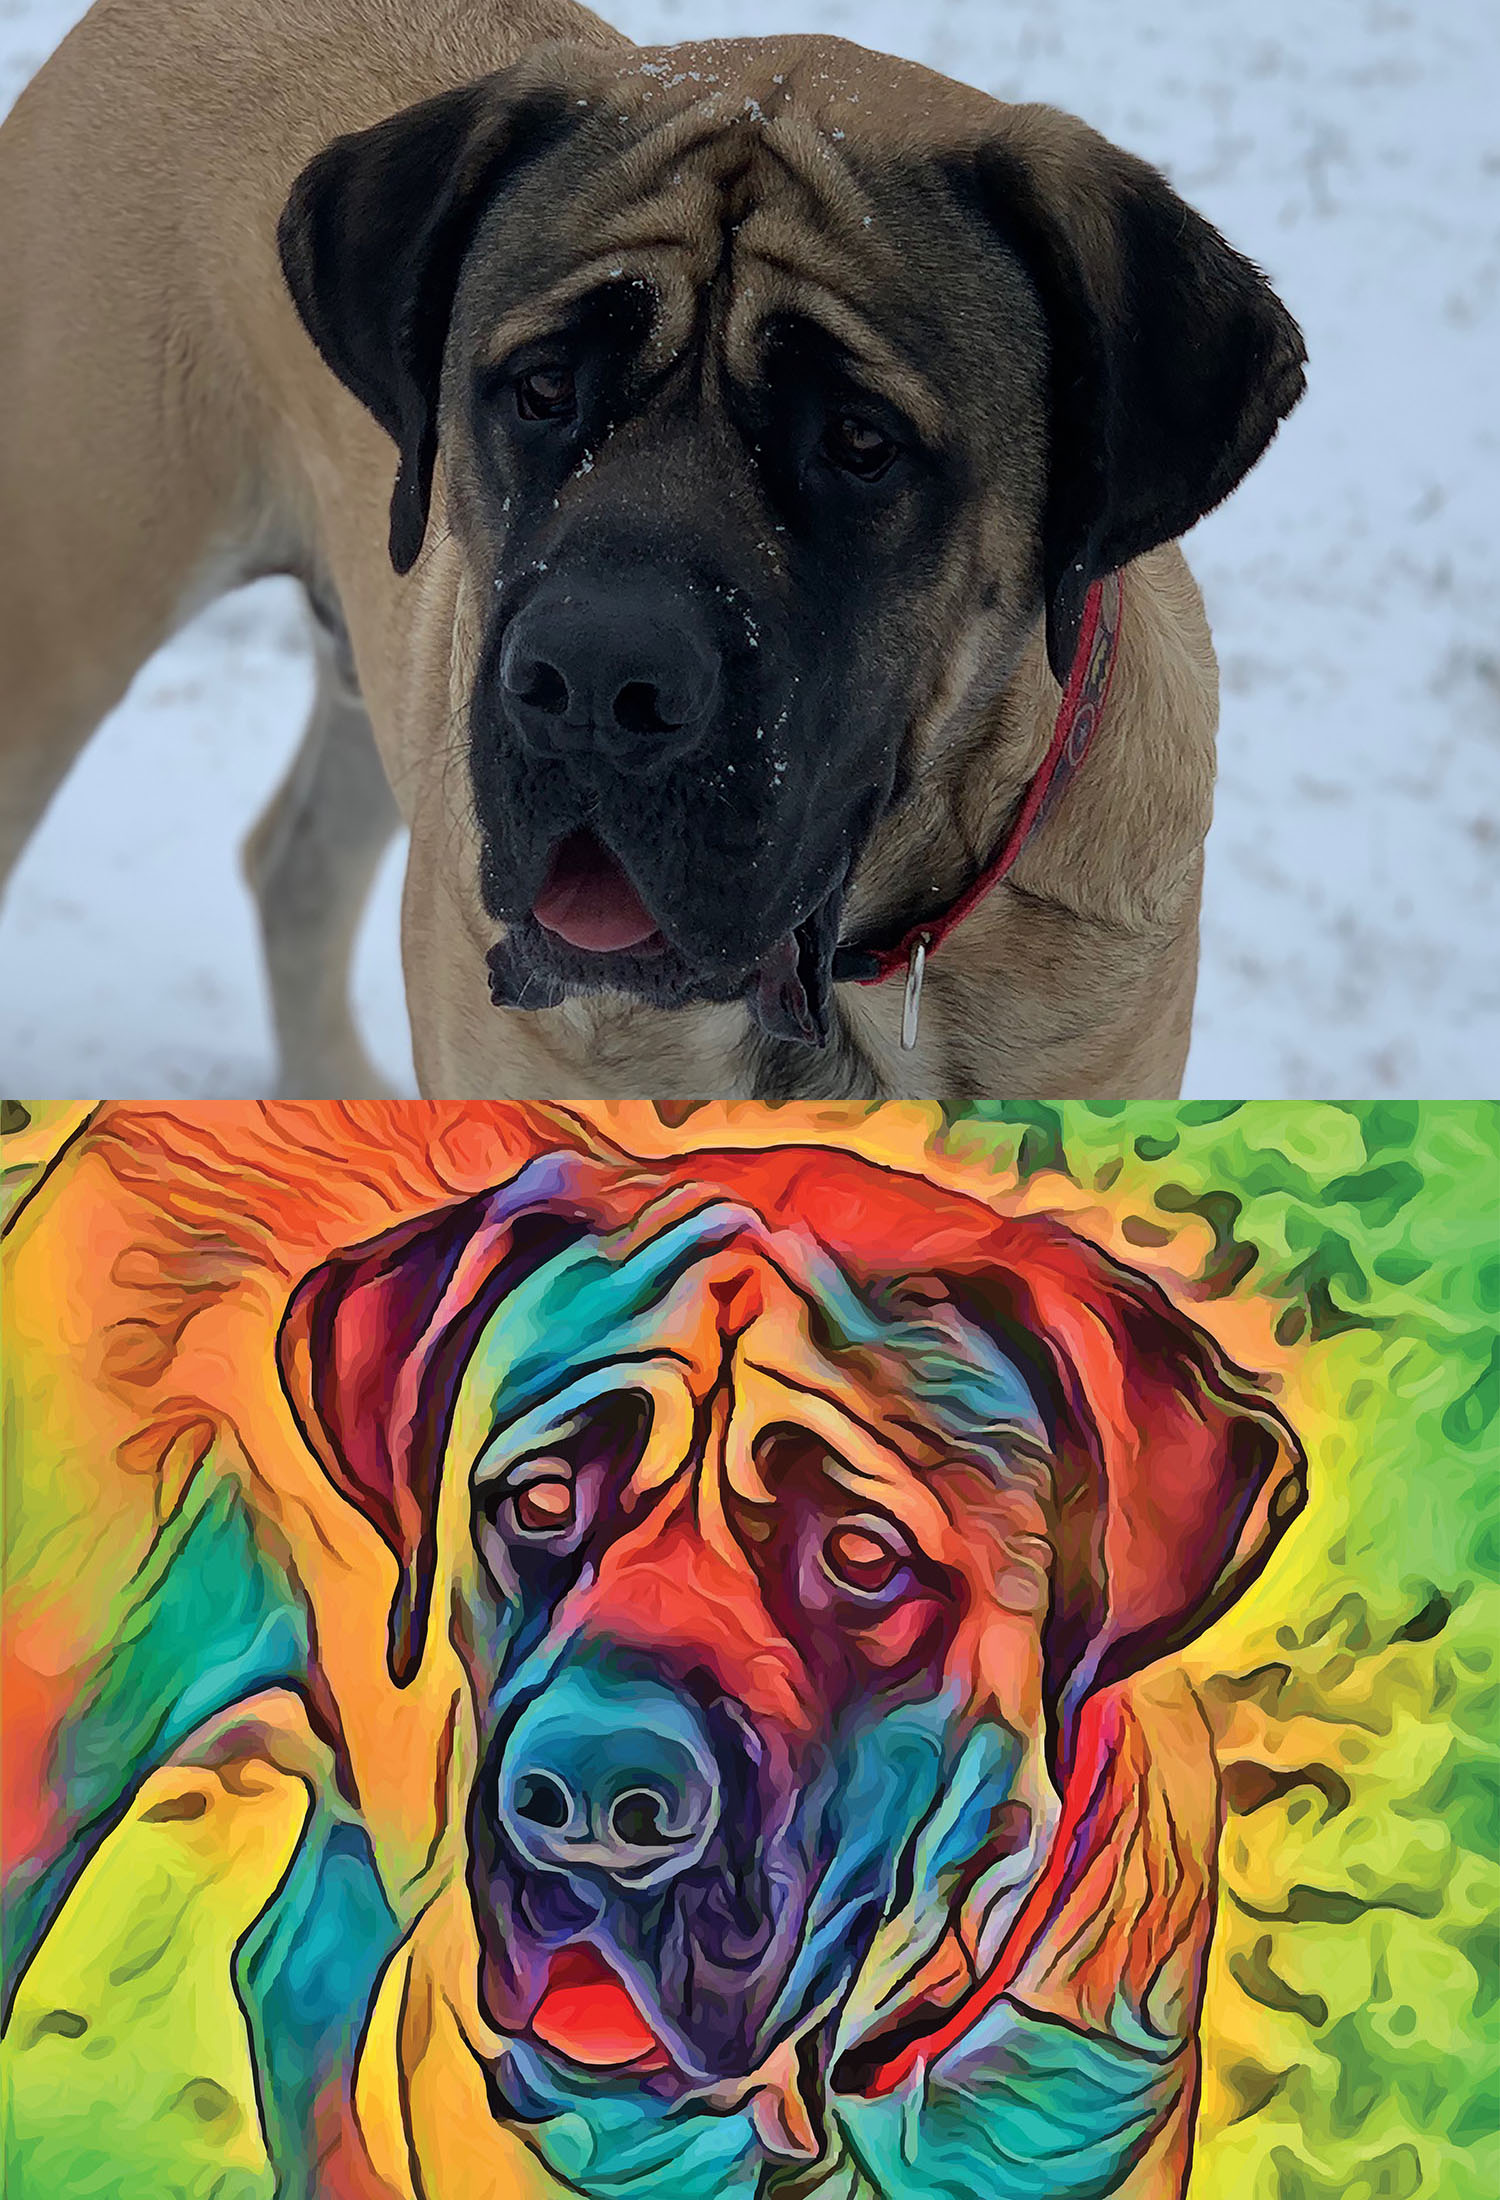 Before and after stylized image of a mastiff